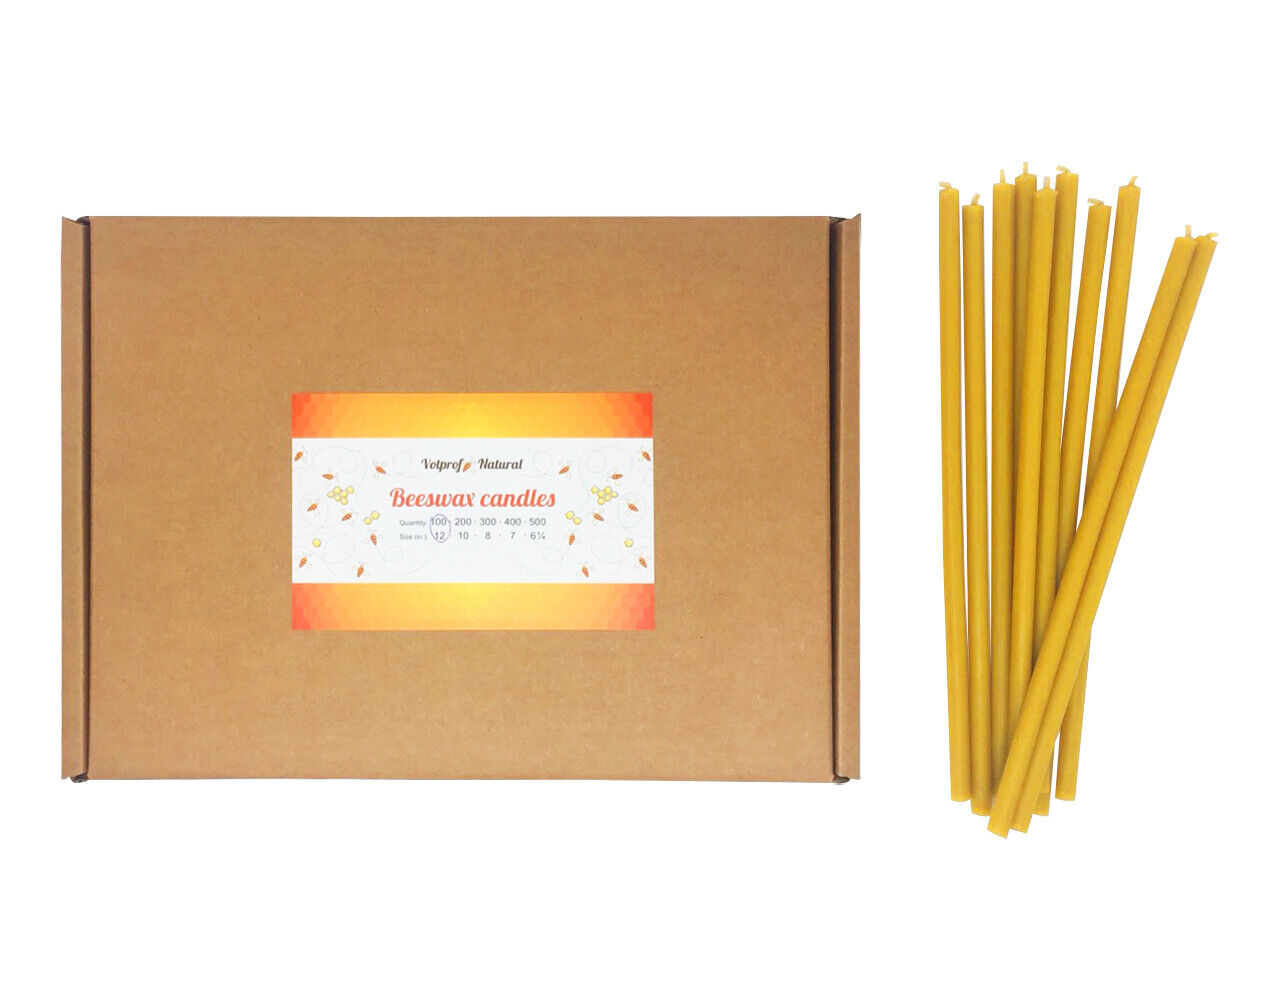 100 Natural 100% Pure Beeswax Taper Candles ( 12 ) Natural Honey Scent Bulk